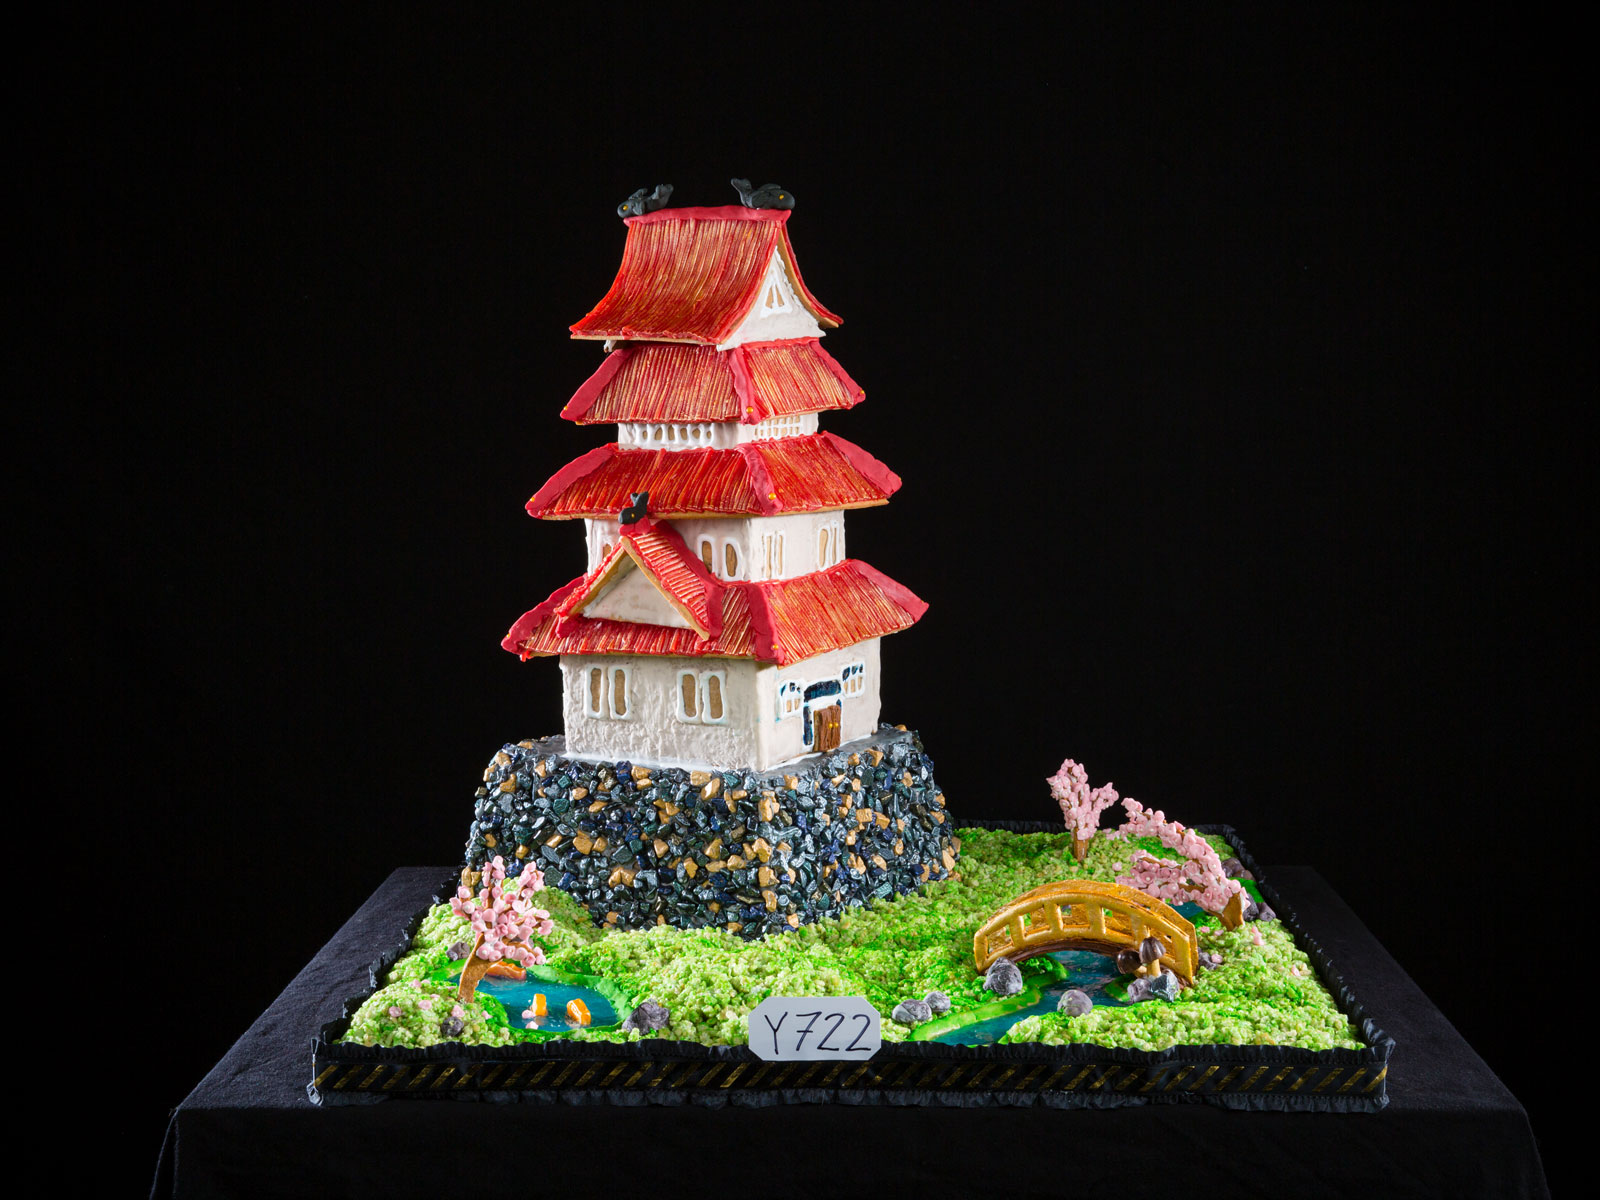 National Gingerbread House Competition Youth 1st Place